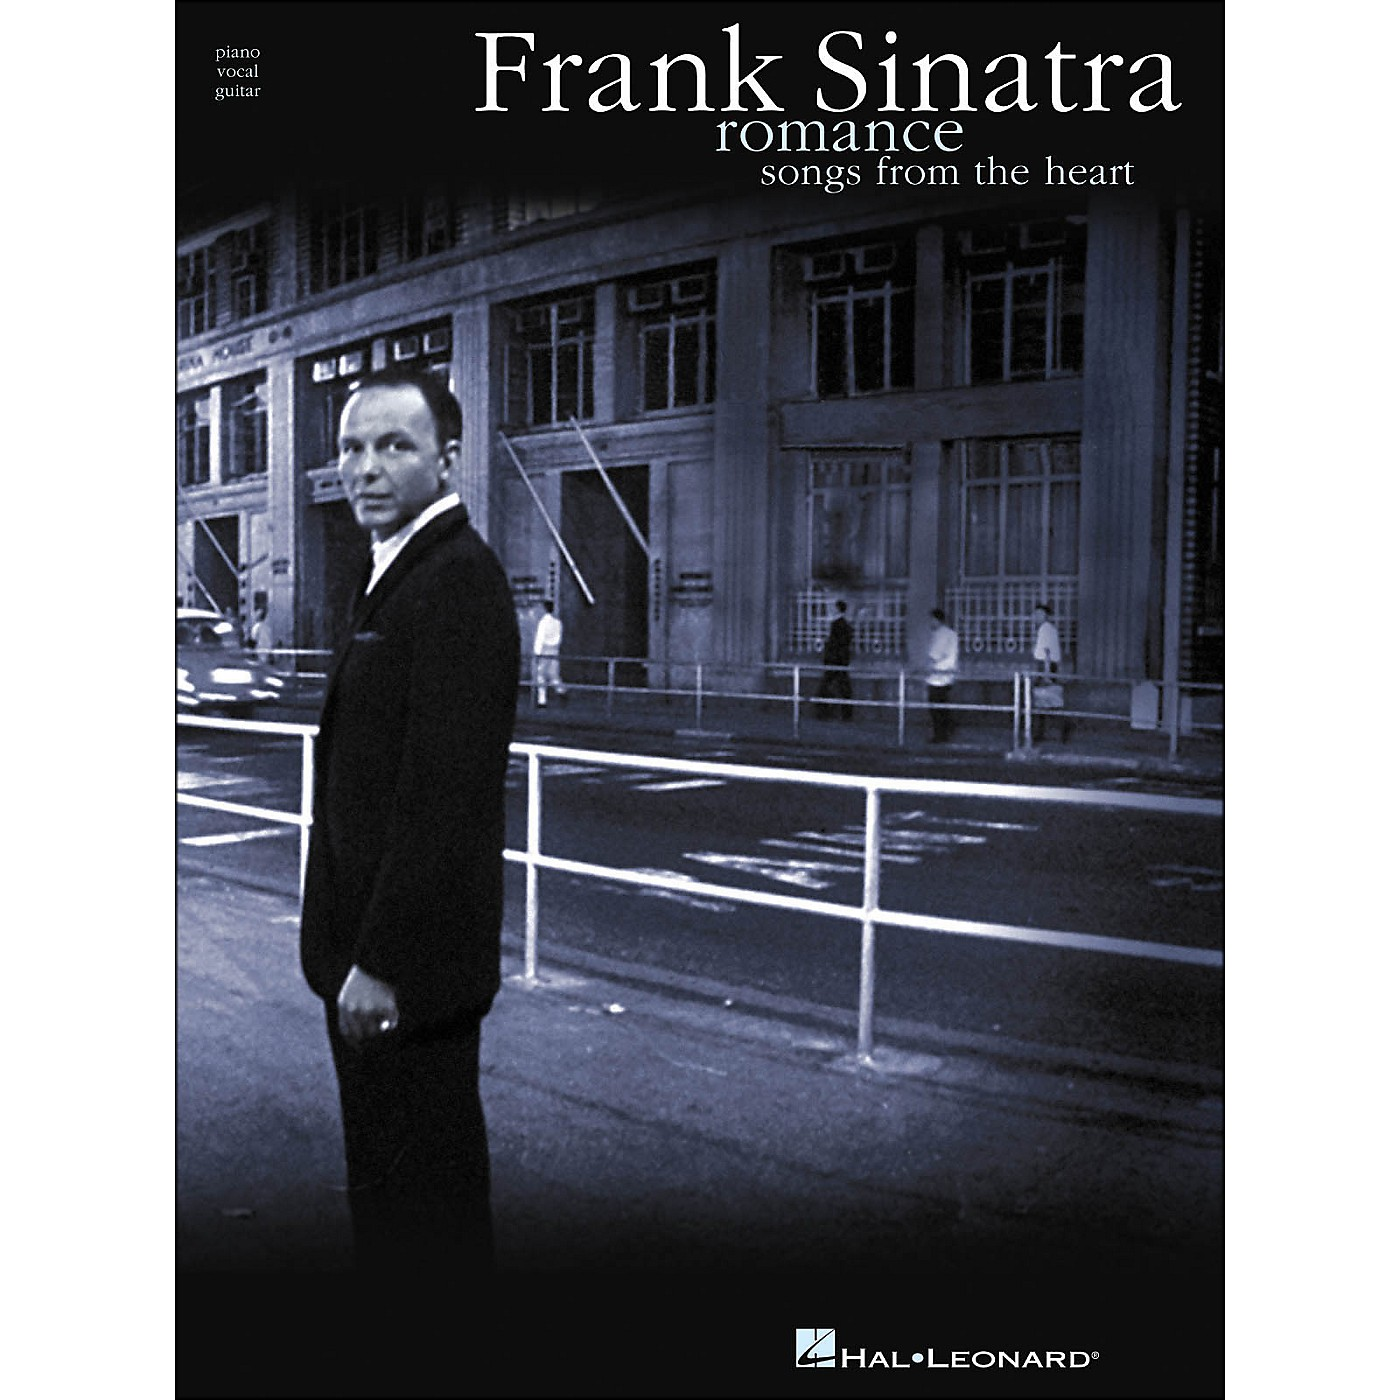 Hal Leonard Frank Sinatra Romance Songs From The Heart arranged for piano, vocal, and guitar (P/V/G) thumbnail